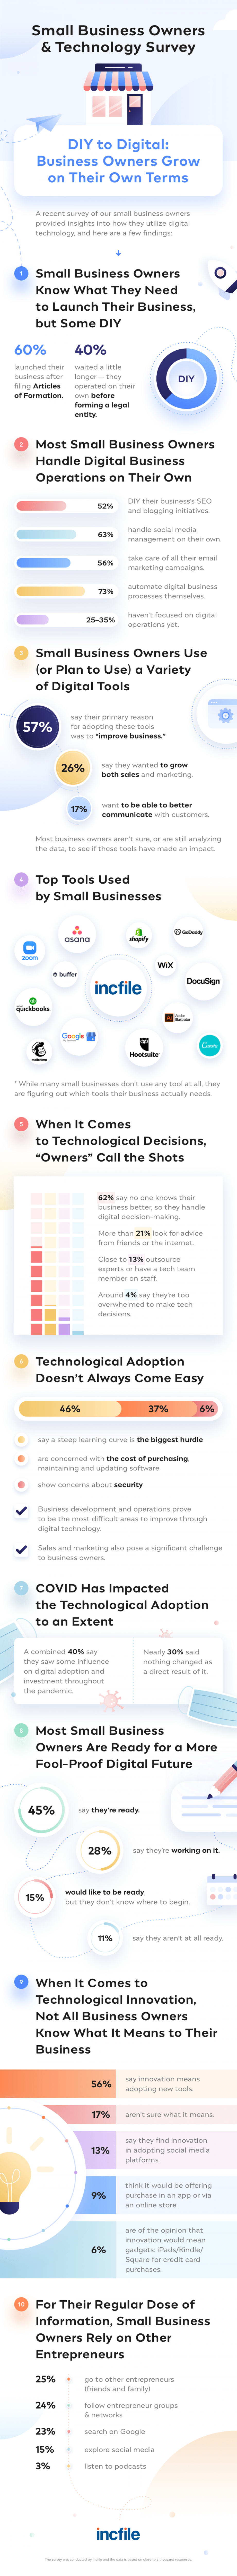 Incfile Survey: For 45% of Small Business Owners, the Biggest Barrier to Digital Adoption Isn't Cost Infographic